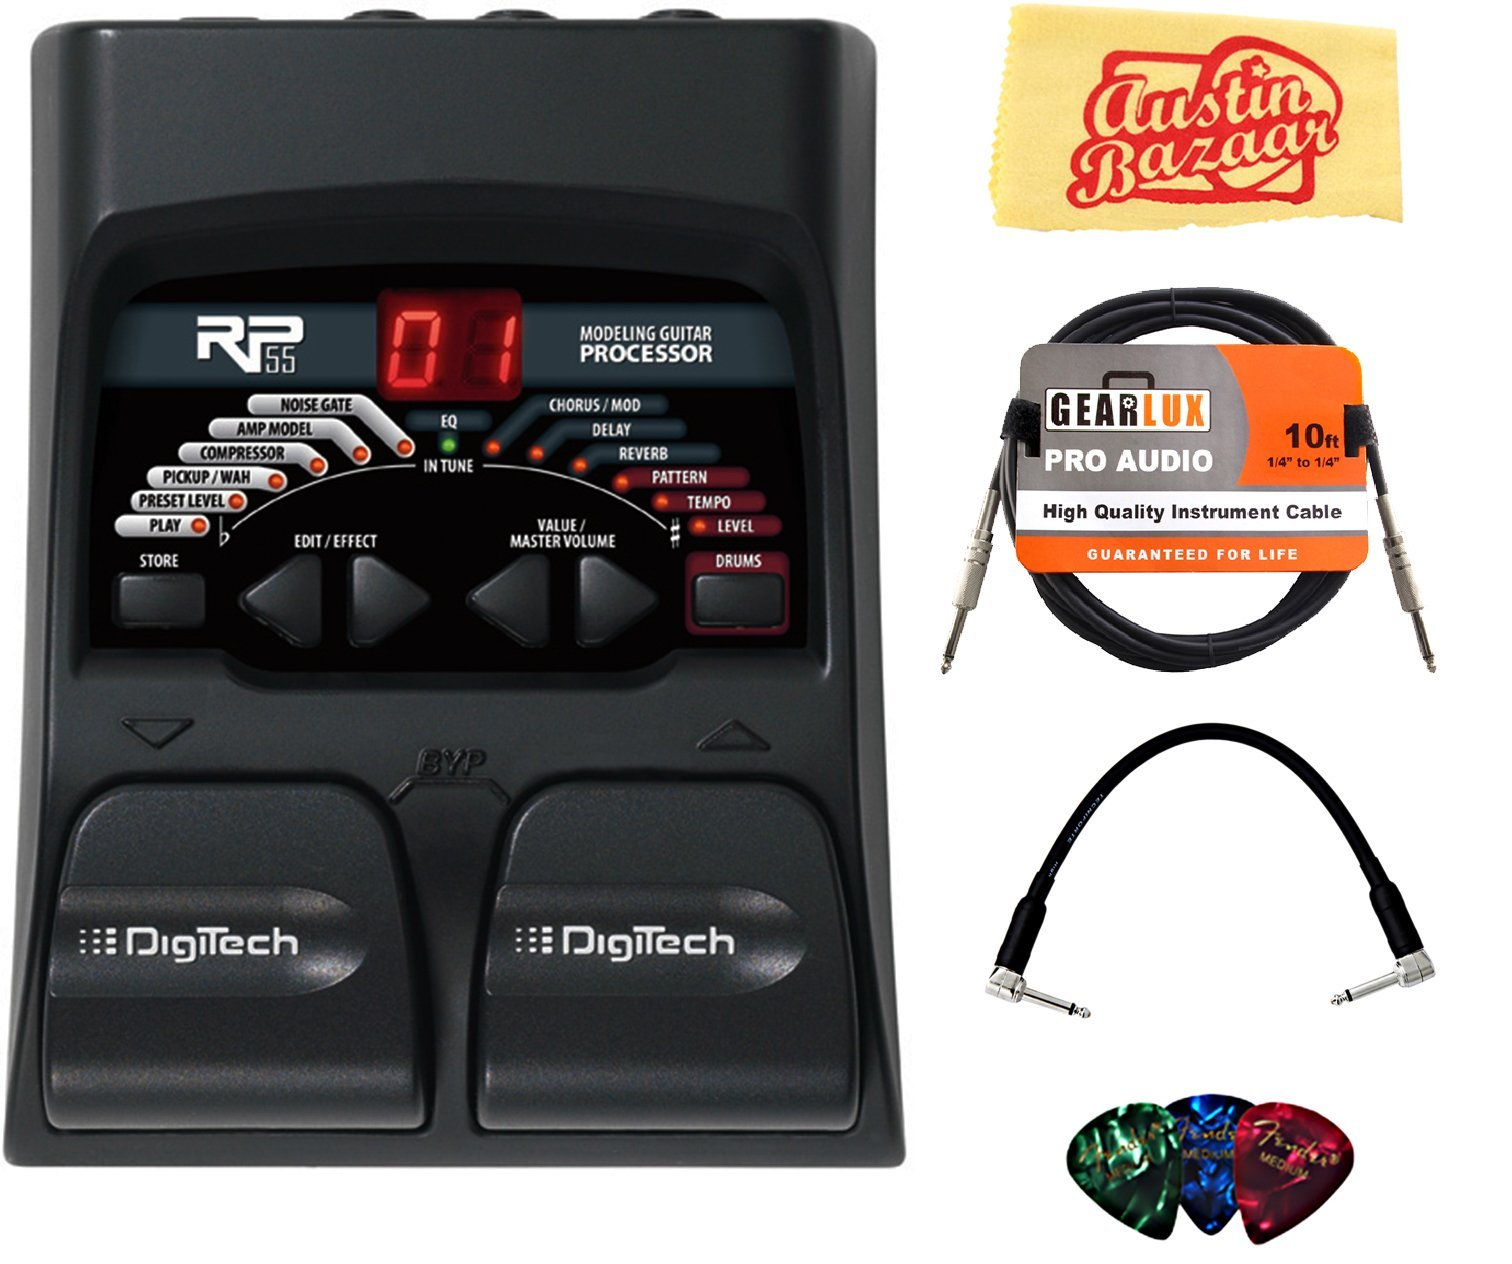 DigiTech RP55 Multi-Effects Pedal Bundle with Instrument Cable, Patch Cable, Picks, and Austin Bazaar Polishing Cloth by DigiTech